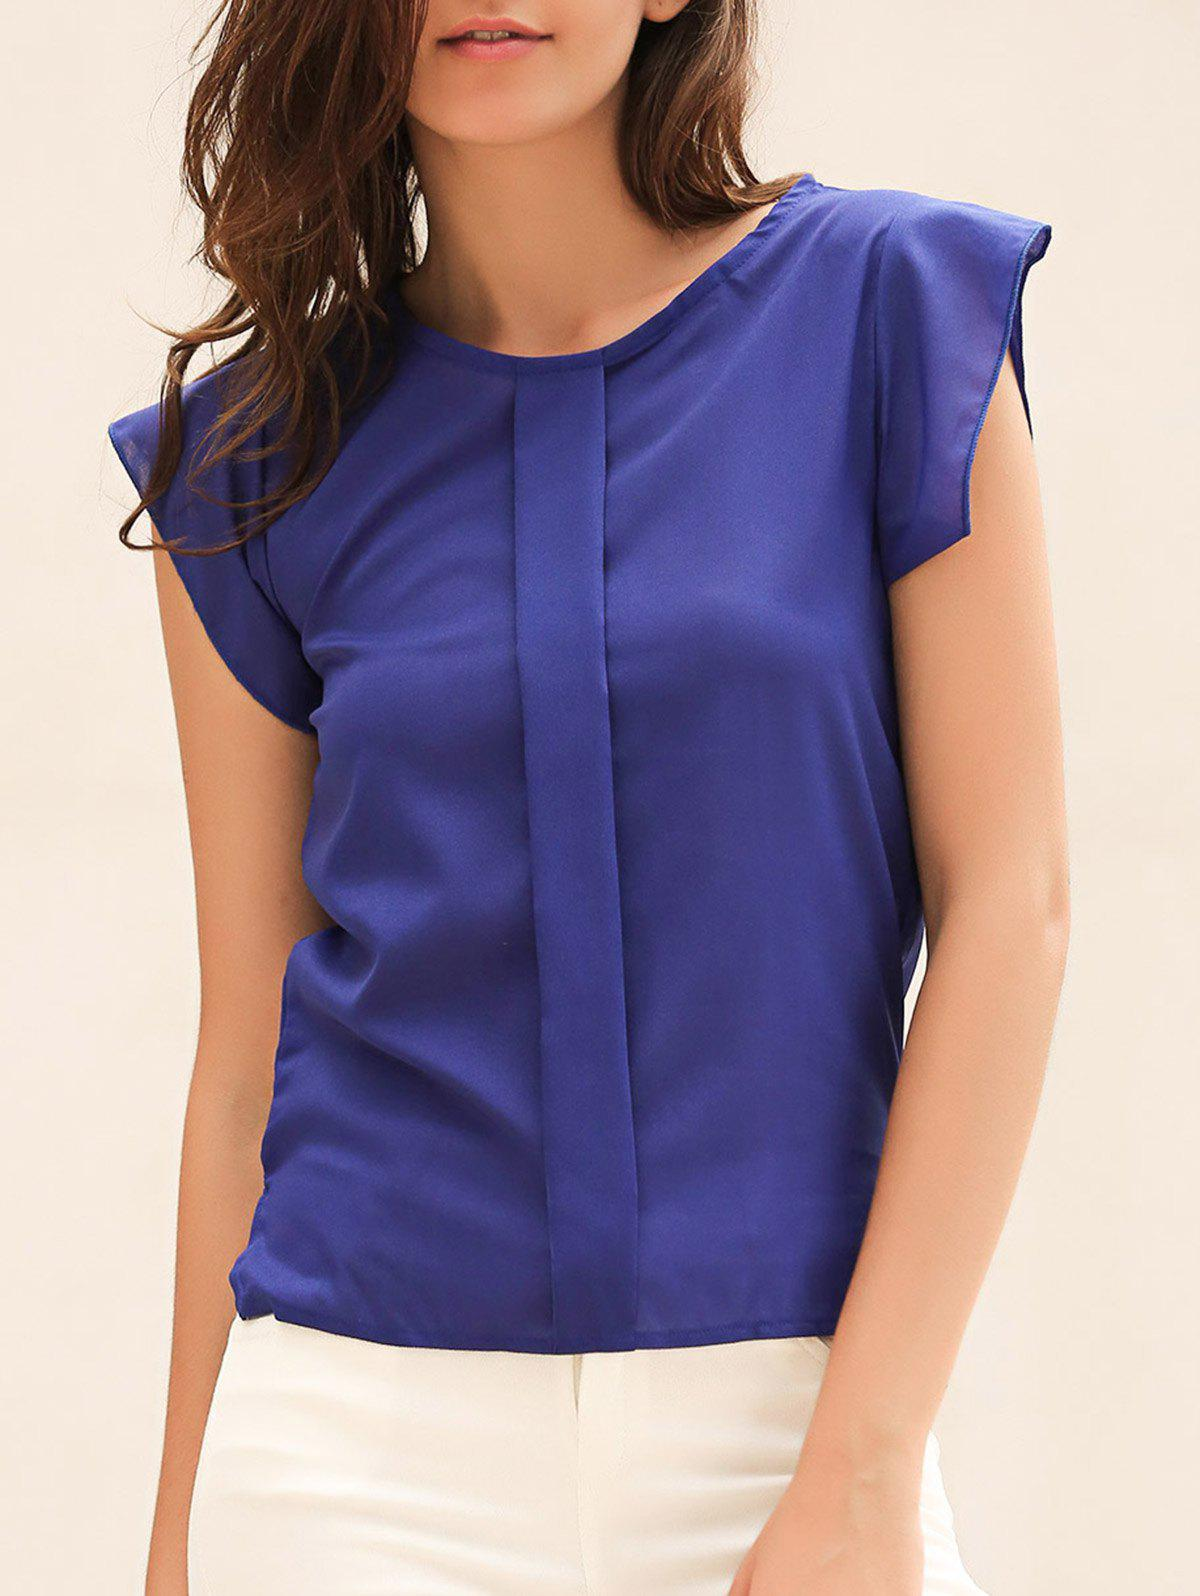 Candy Color Loose Leisure Women's Chiffon Short Tulip Sleeve Blouse Tops - BLUE M